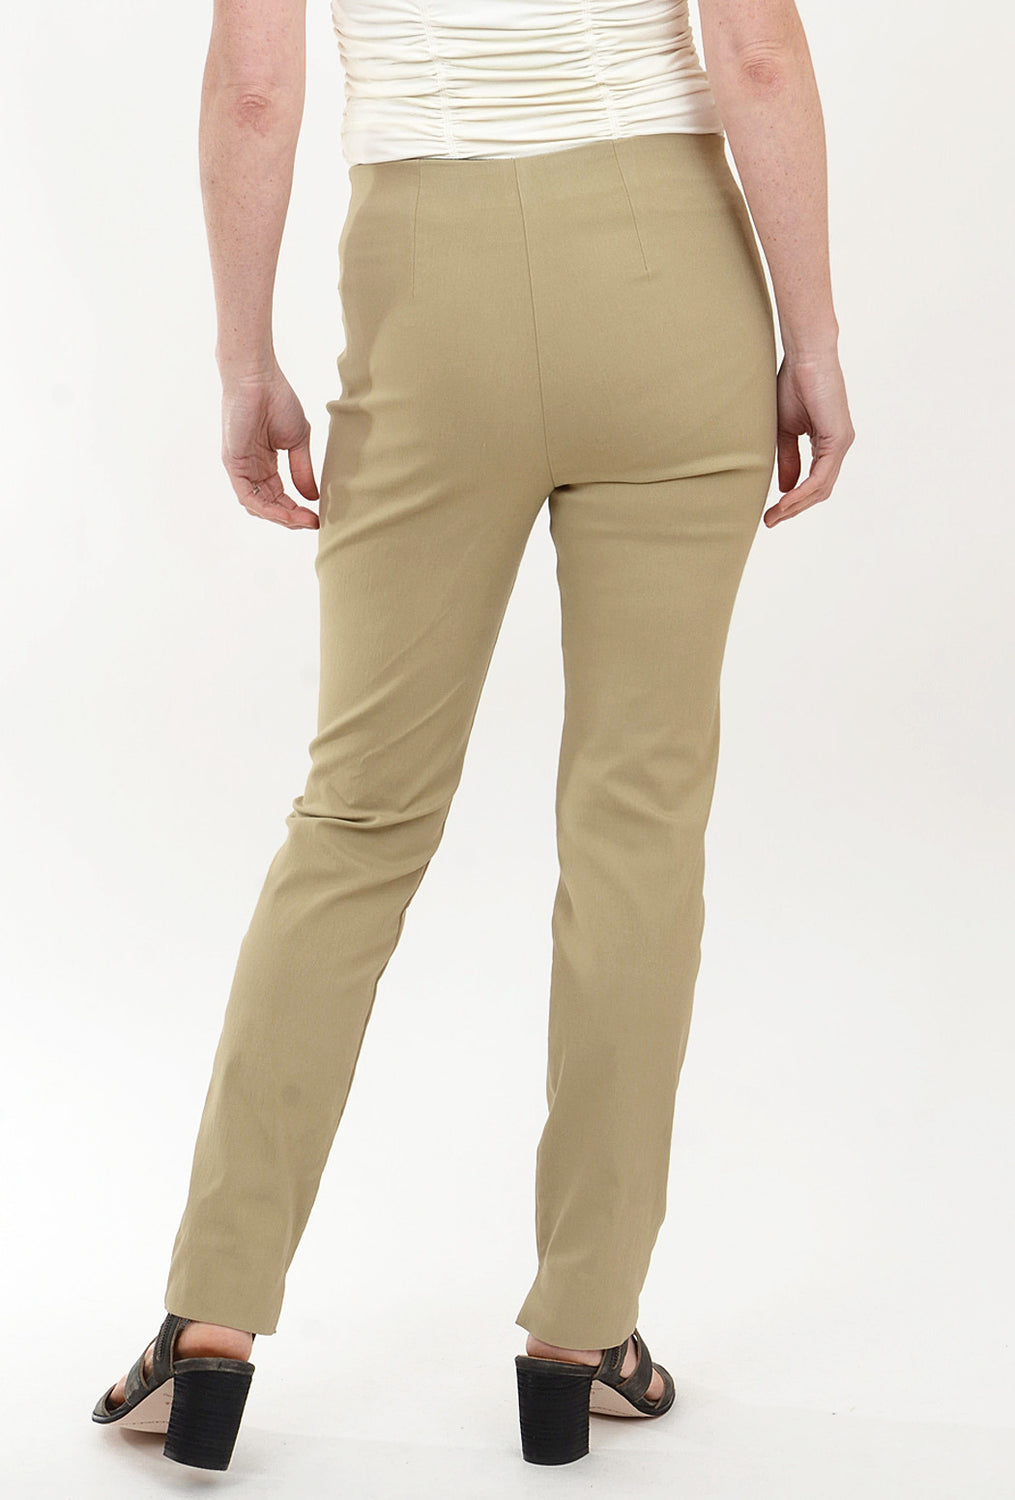 Equestrian Zani Long Stretch Twill Pant, Khaki